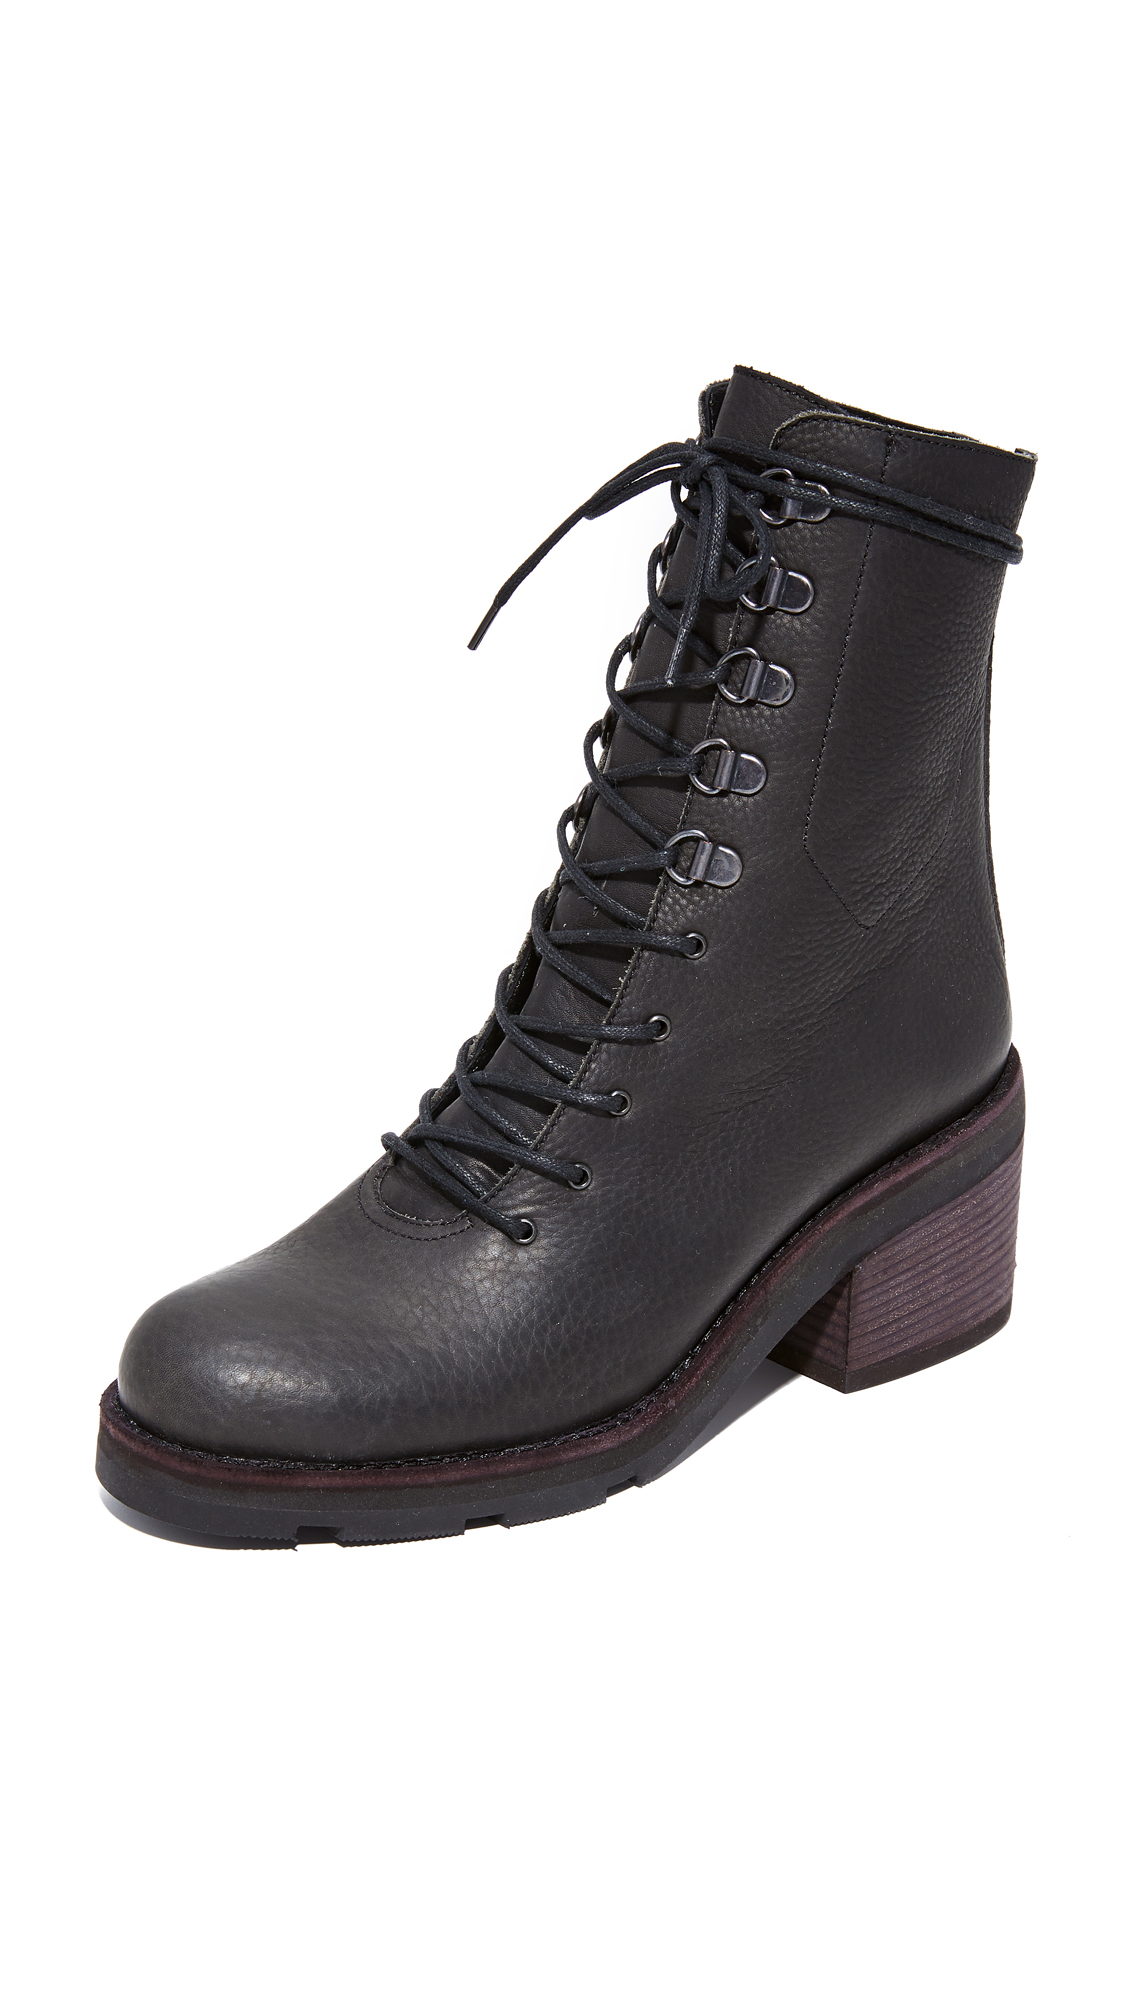 LD Tuttle The Below Lug Sole Combat Boots - Black